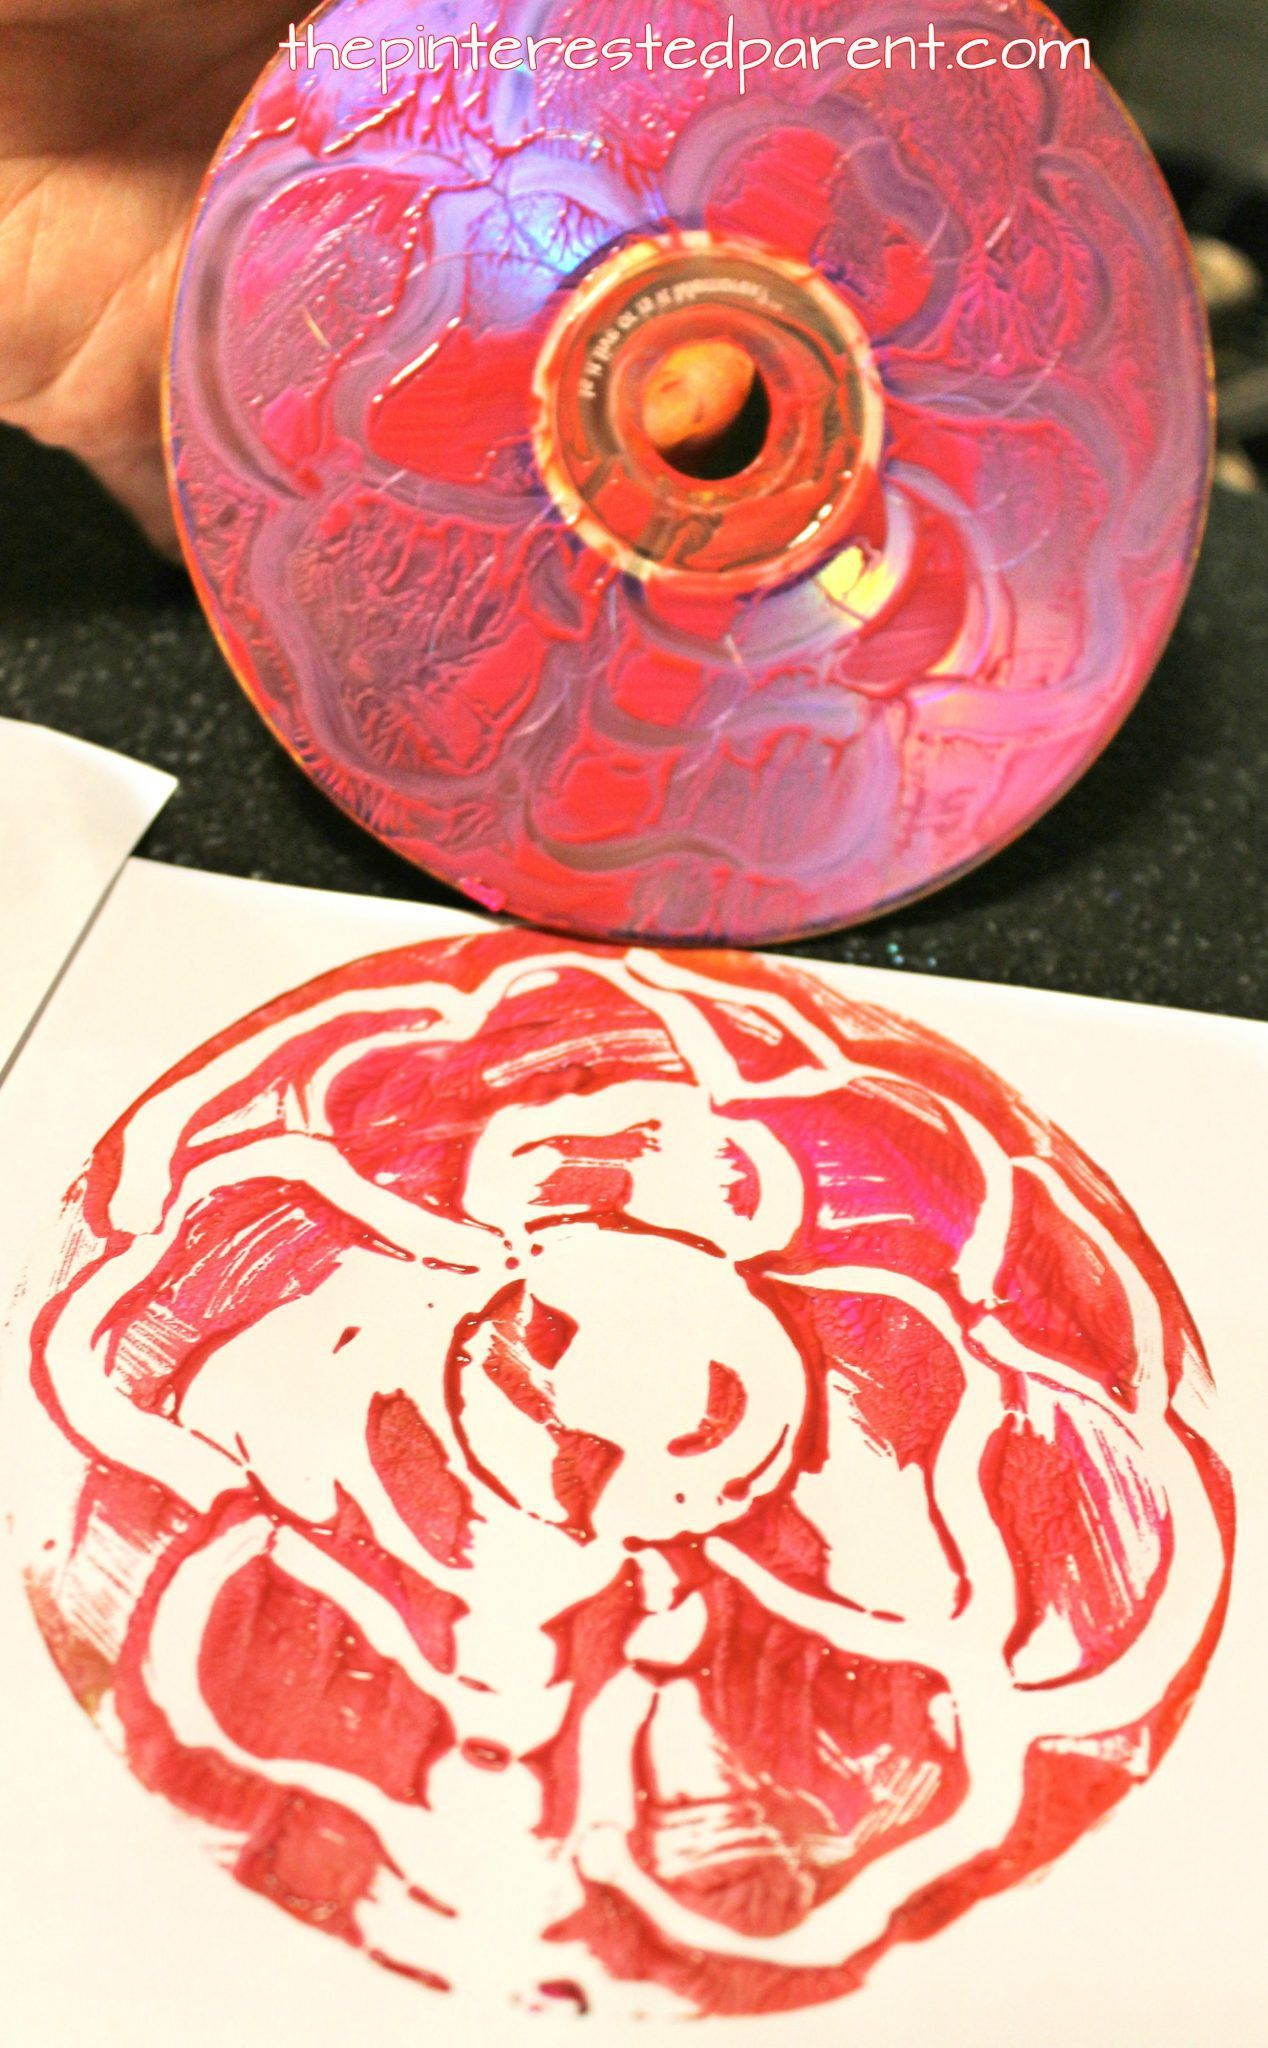 Printmaking with CDs - techniques using paint , yarn, Q-tips and paint.  Arts And CraftsKid CraftsKid ProjectsProject ...